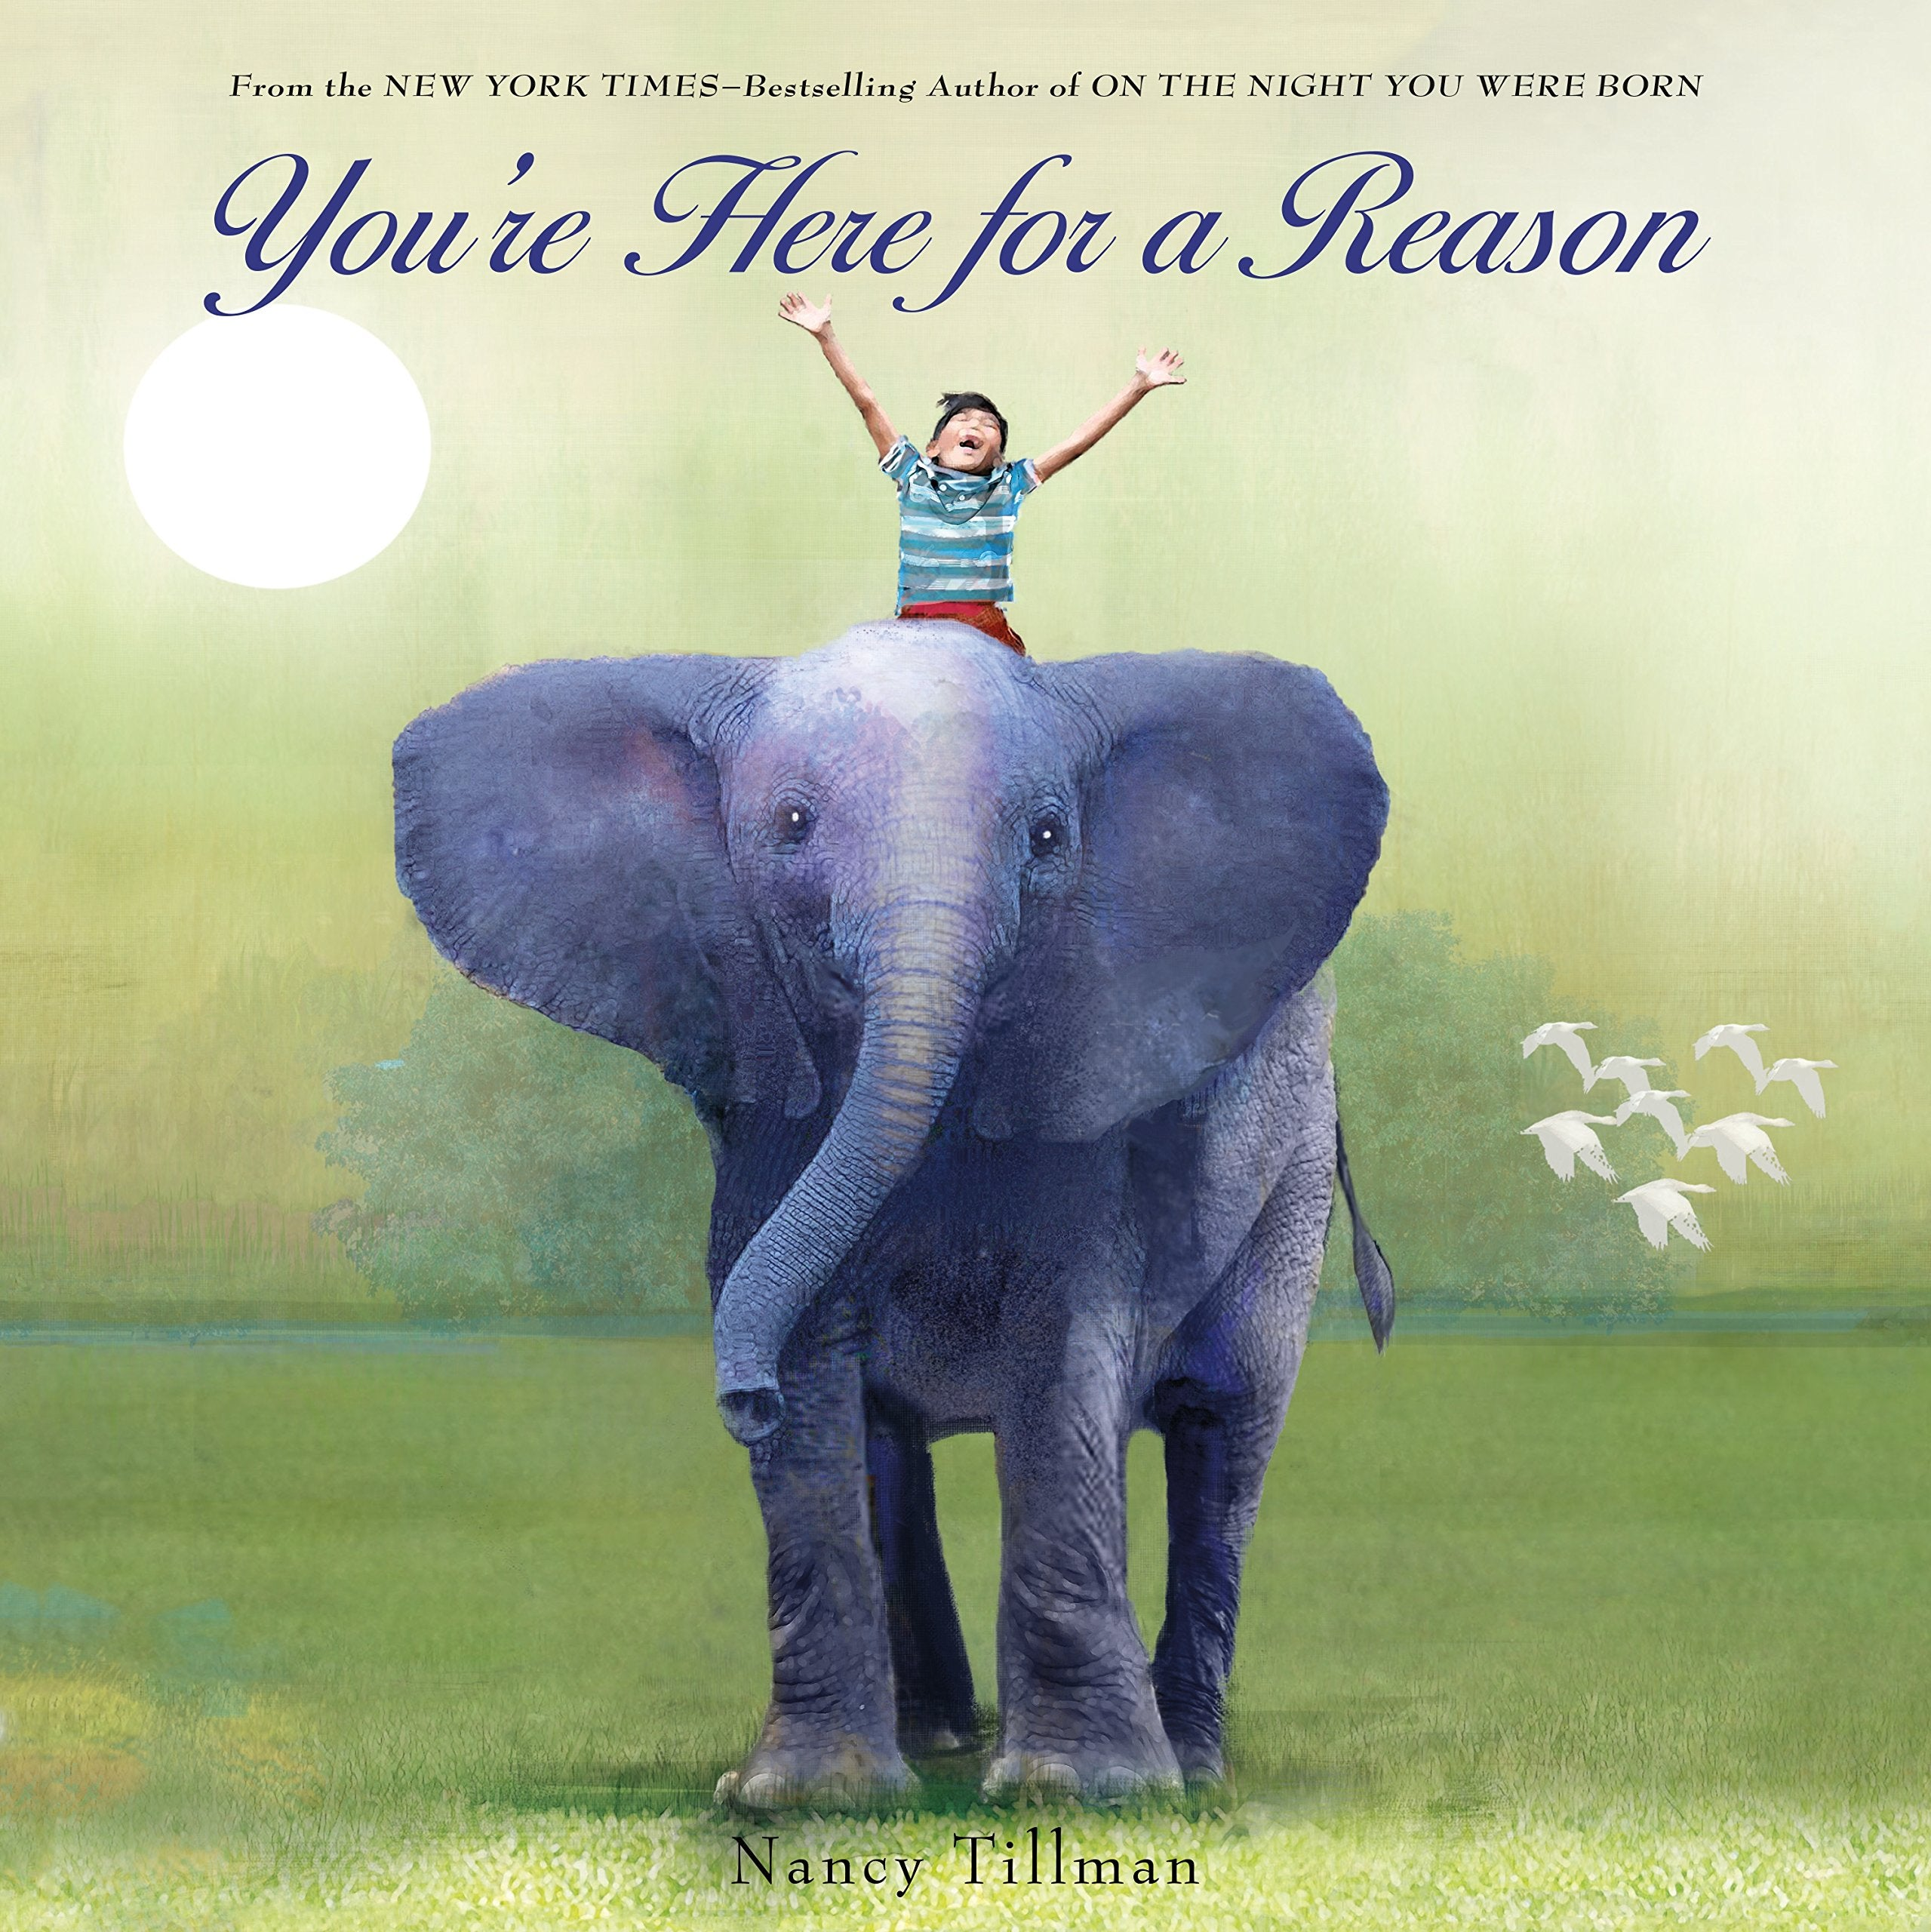 Book with a Boy Riding an Elephant on Cover